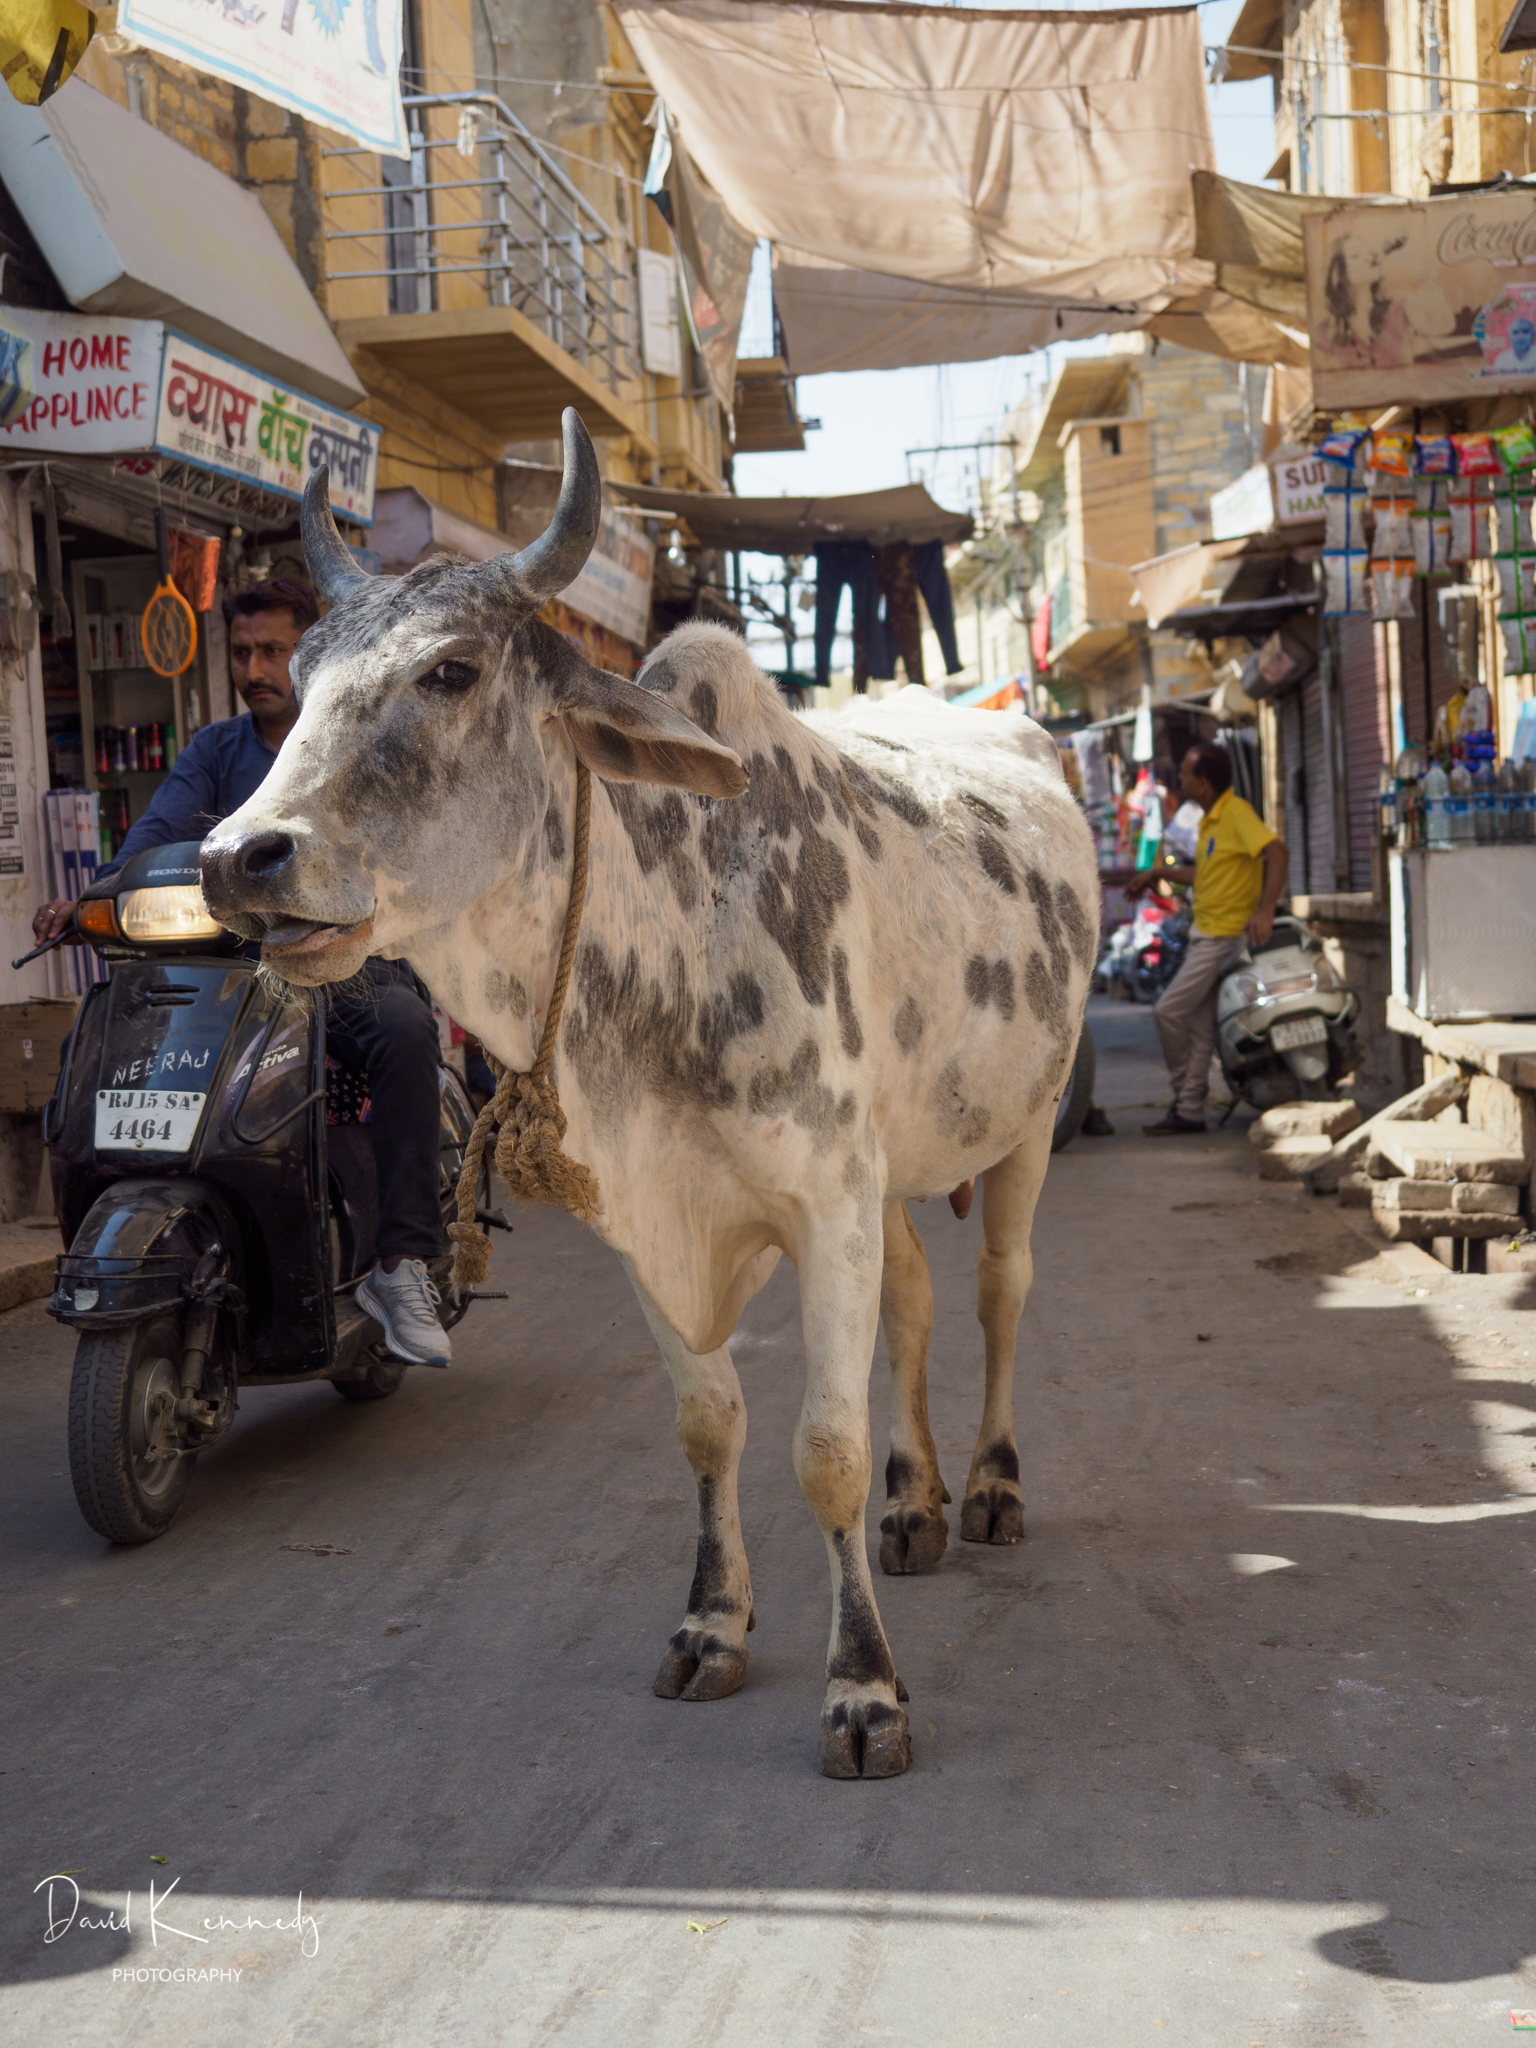 Cow in Narrow Street in India